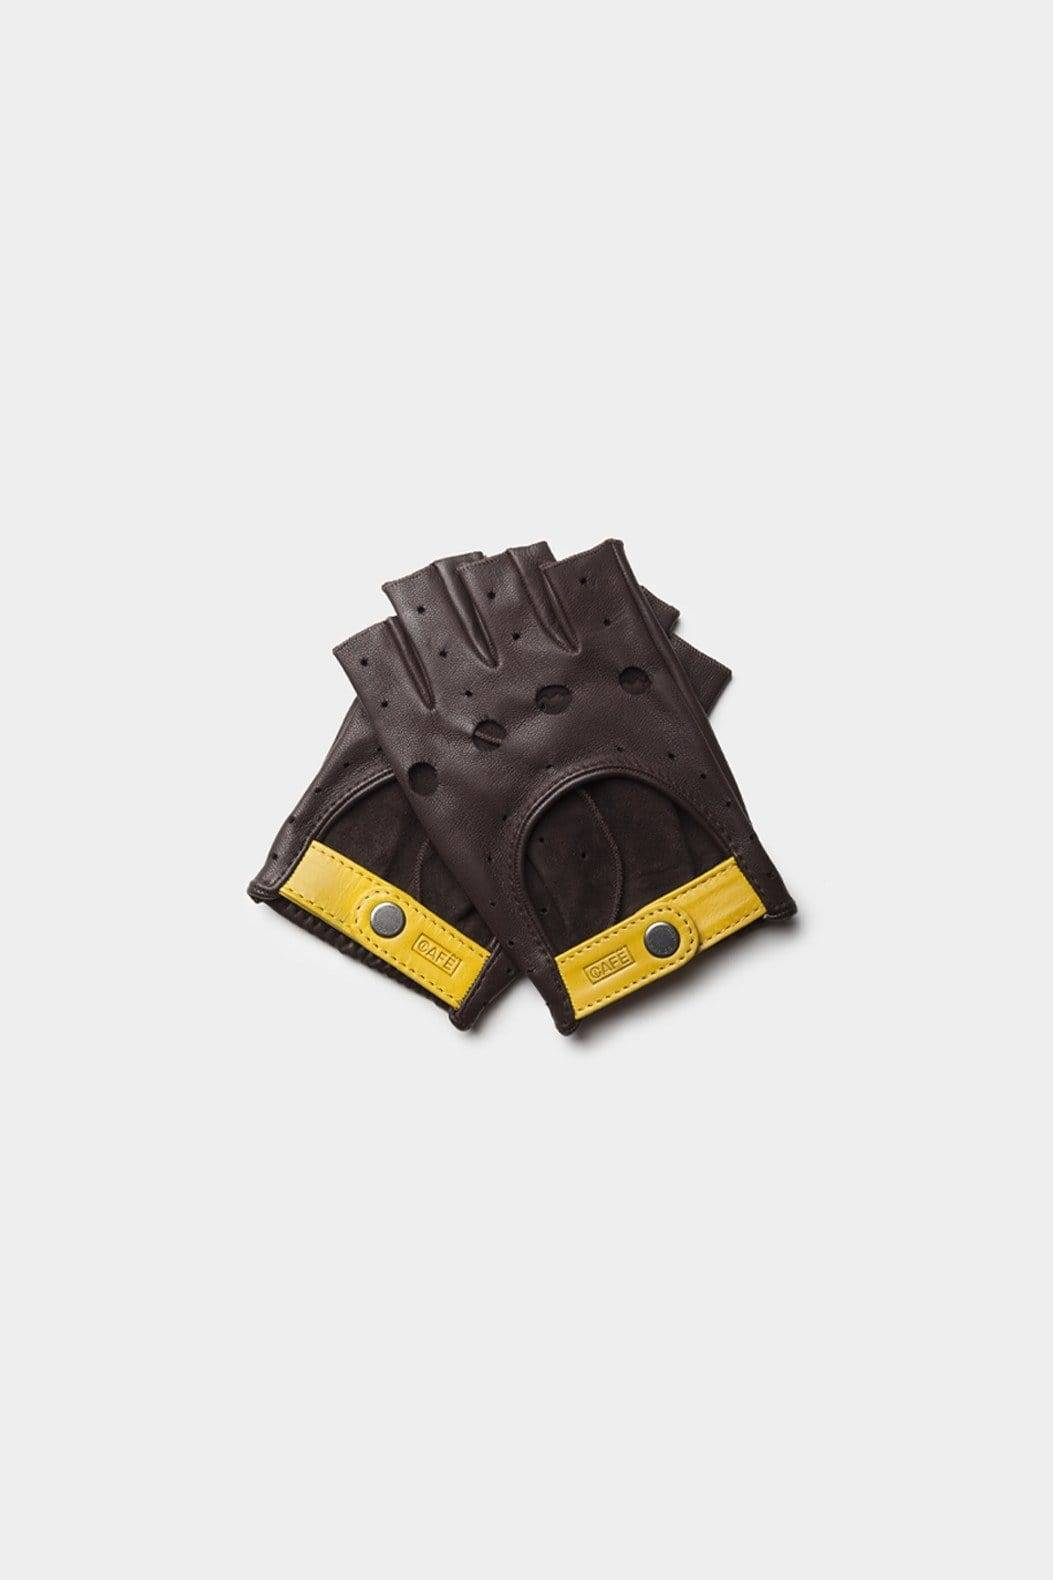 Cafe Leather Triton Fingerless Driving Gloves -  unisex - multicolor - Size: one fit